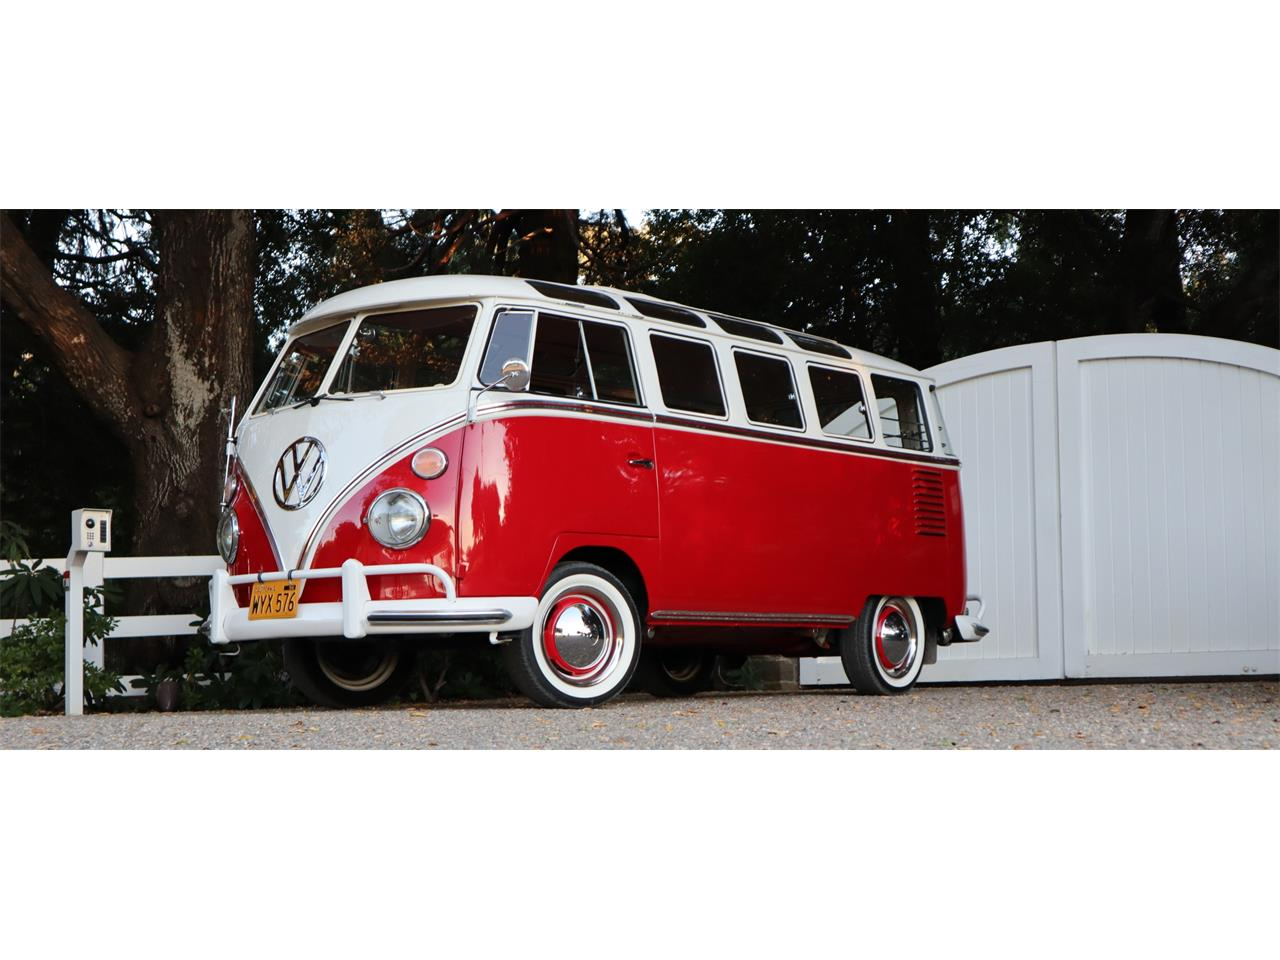 for sale 1963 volkswagen bus in saint helena, california cars - saint helena, ca at geebo